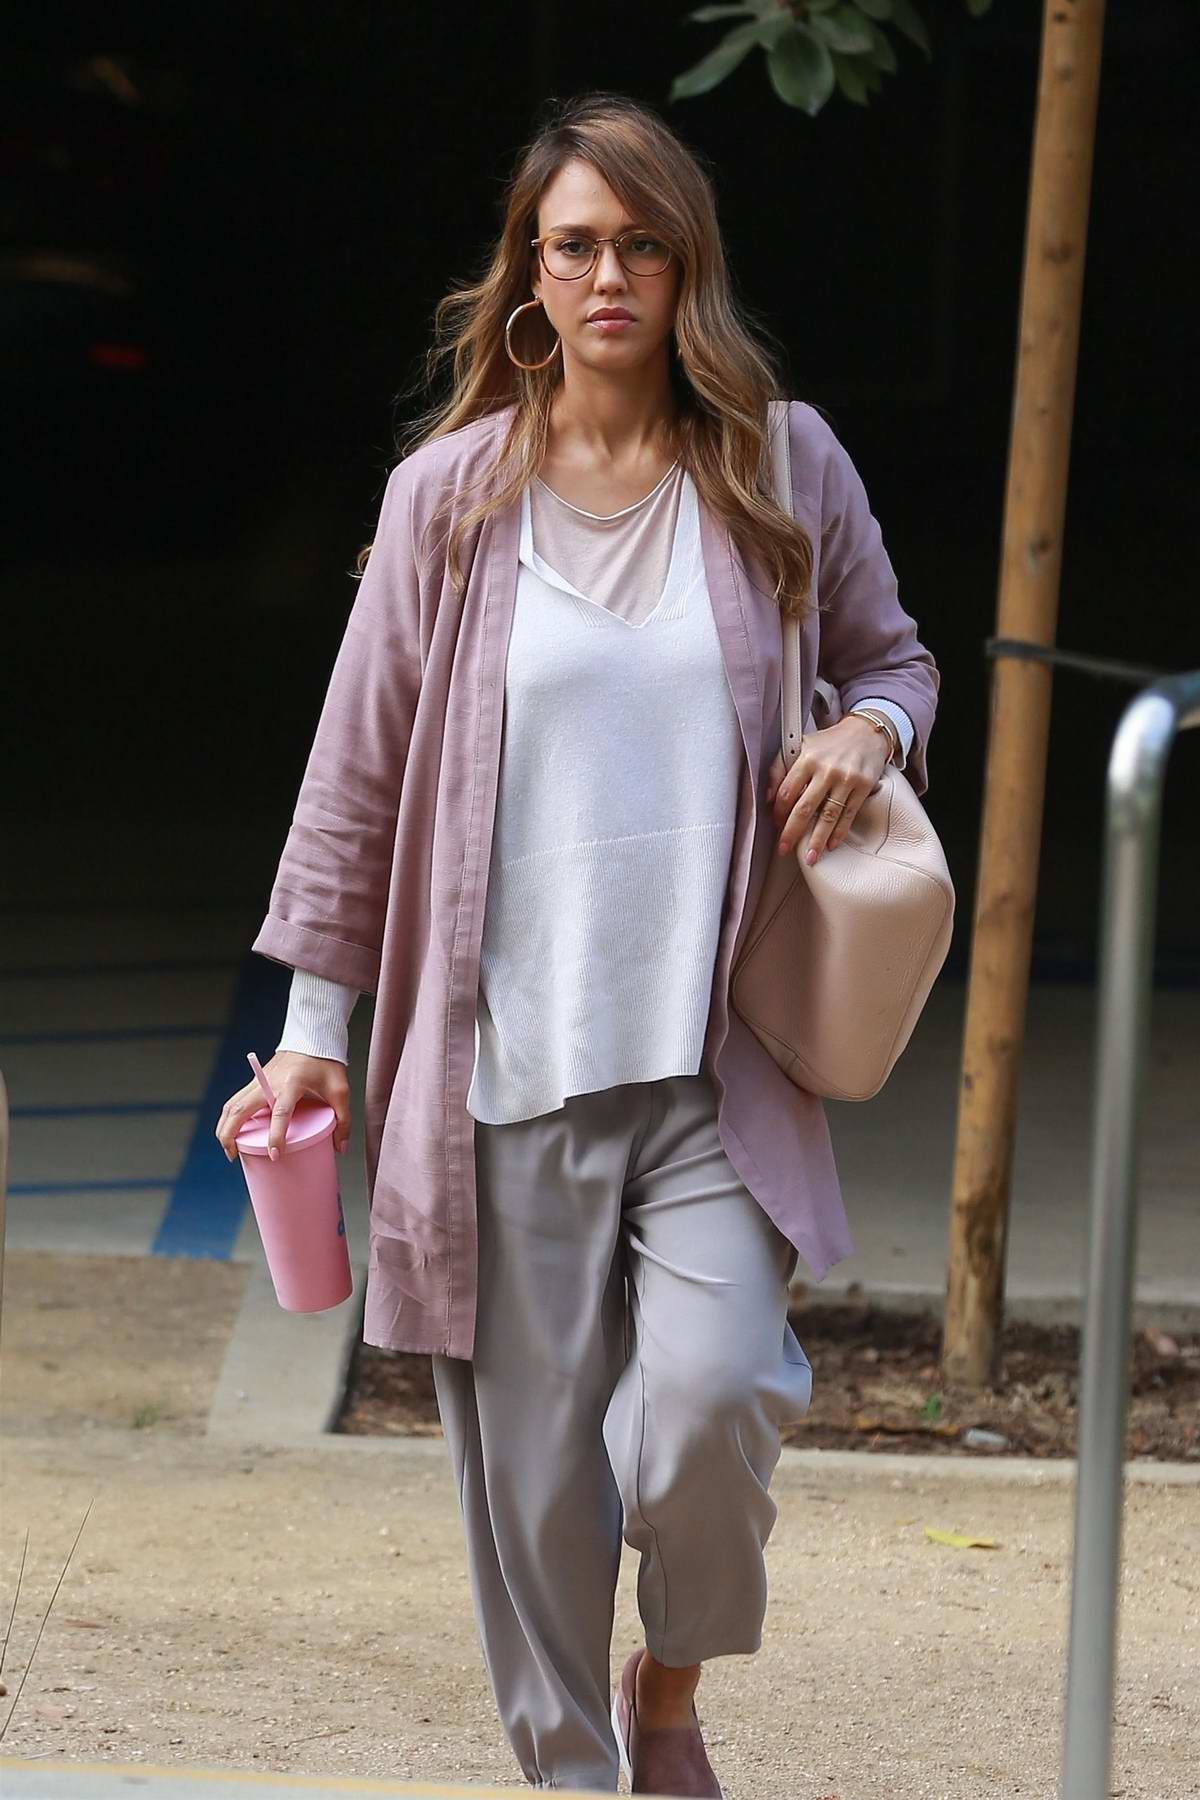 Jessica Alba arriving for work at the Honest Company in Playa Del Vista, California